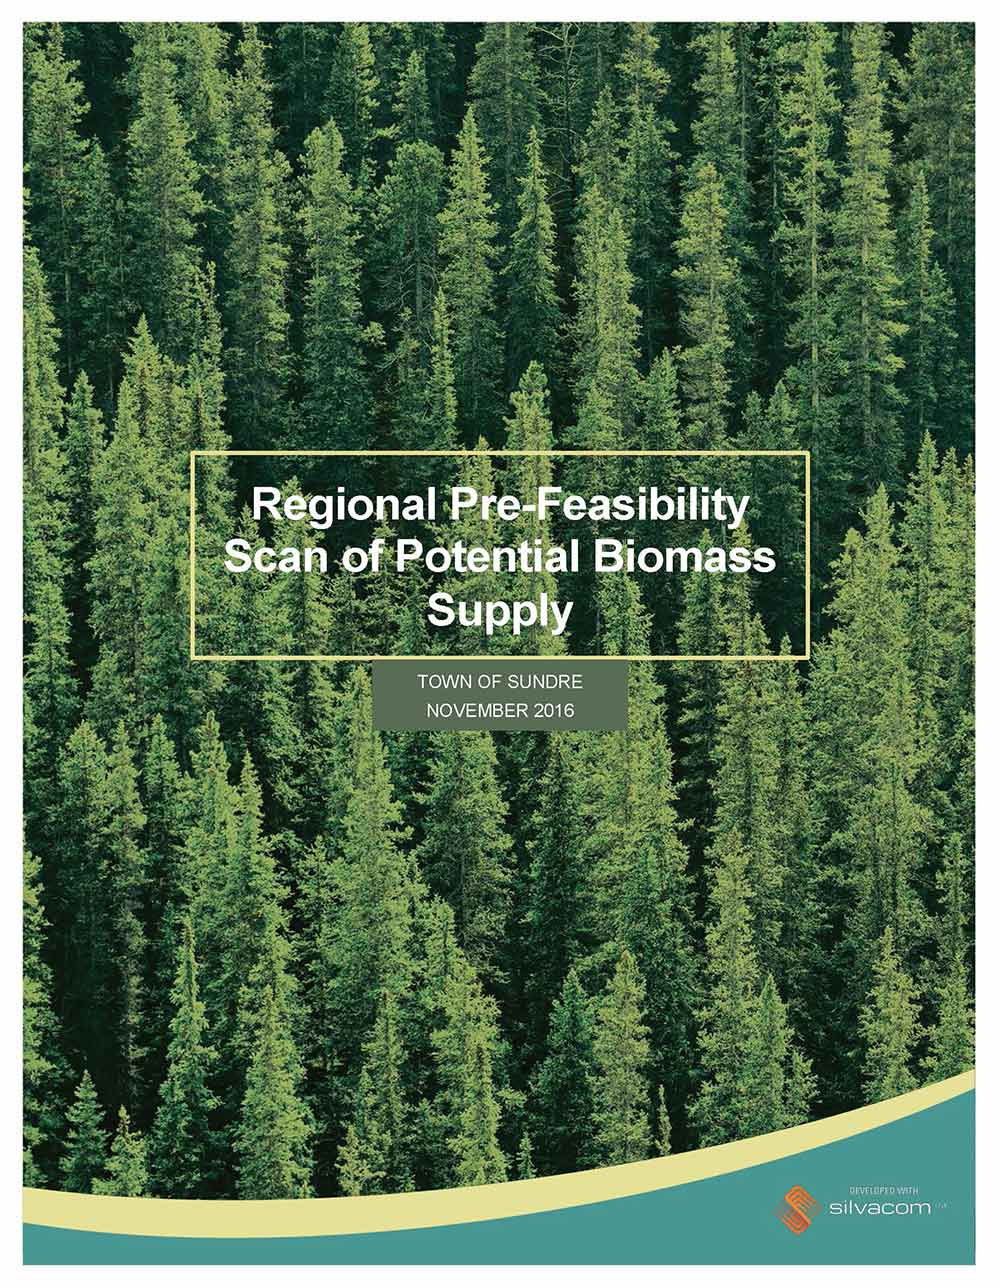 Pre-Feasibility-Scan-of-Potential-Biomass-Supply_Sundre-smaller-_Page_01